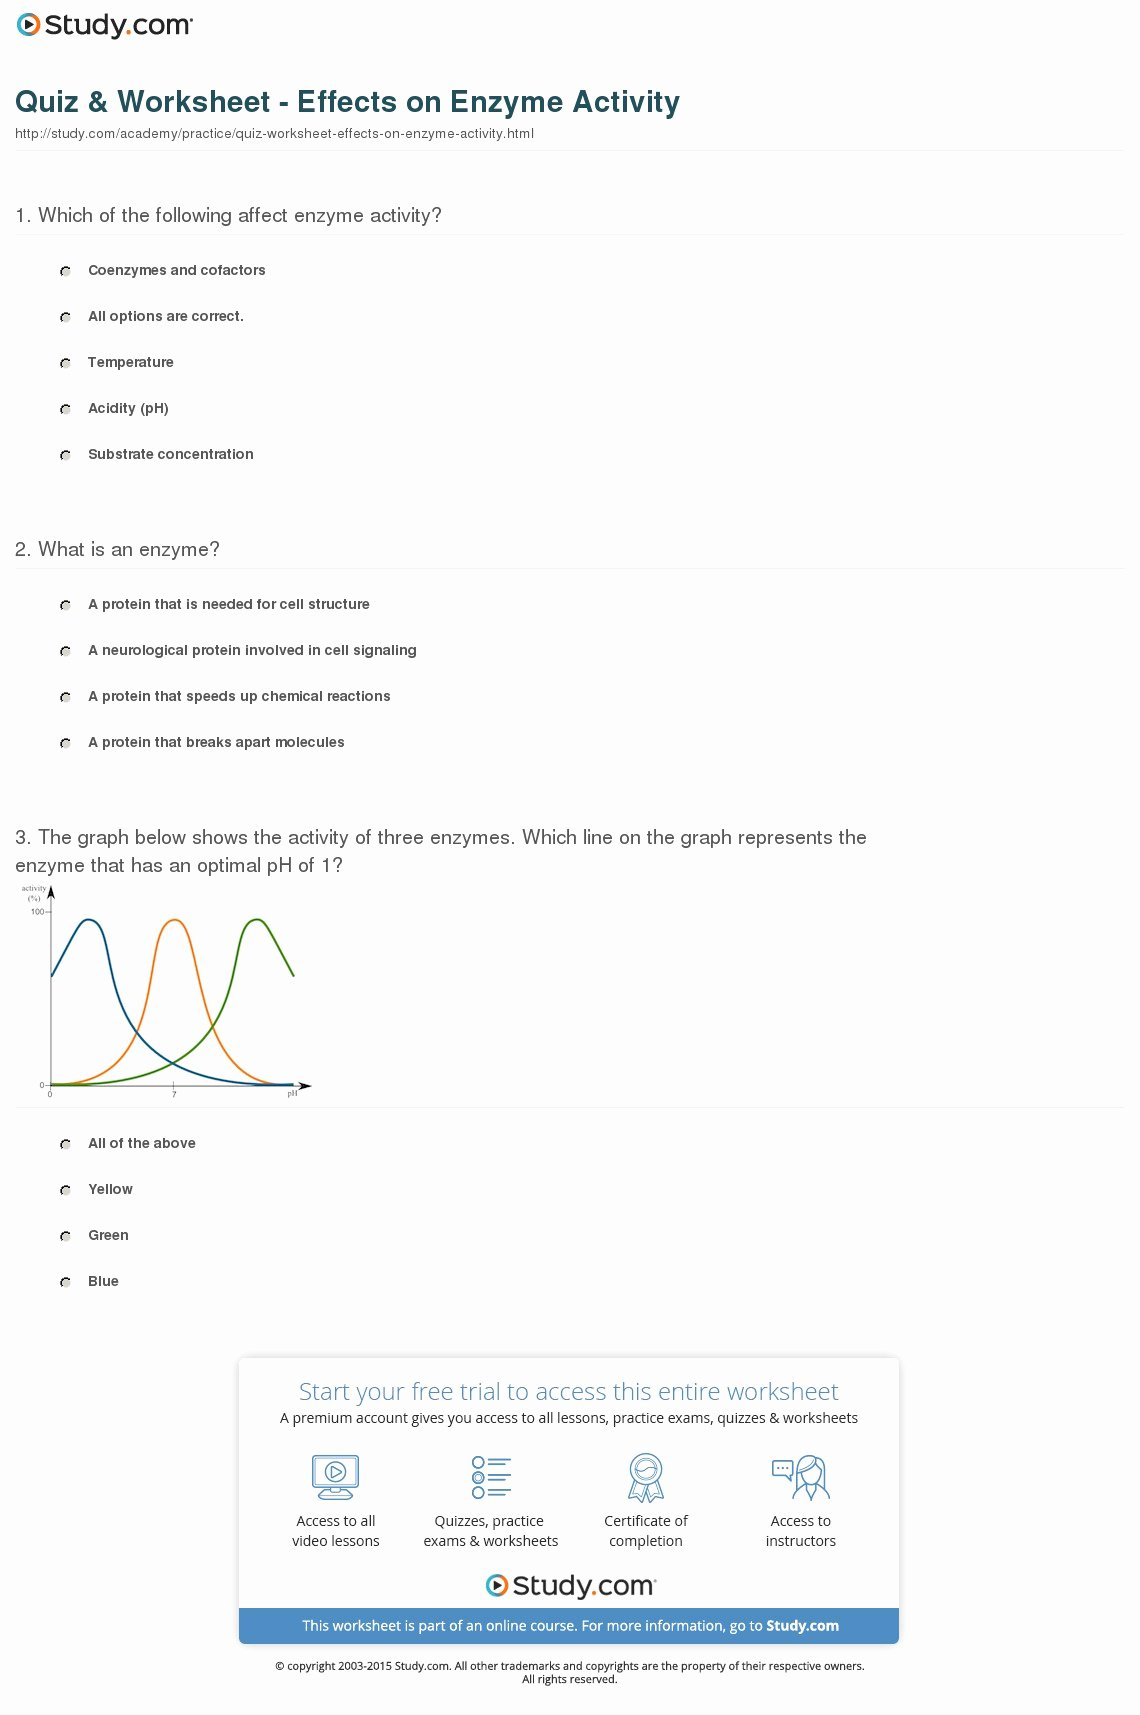 Enzyme Reactions Worksheet Answers Best Of Quiz & Worksheet Effects On Enzyme Activity